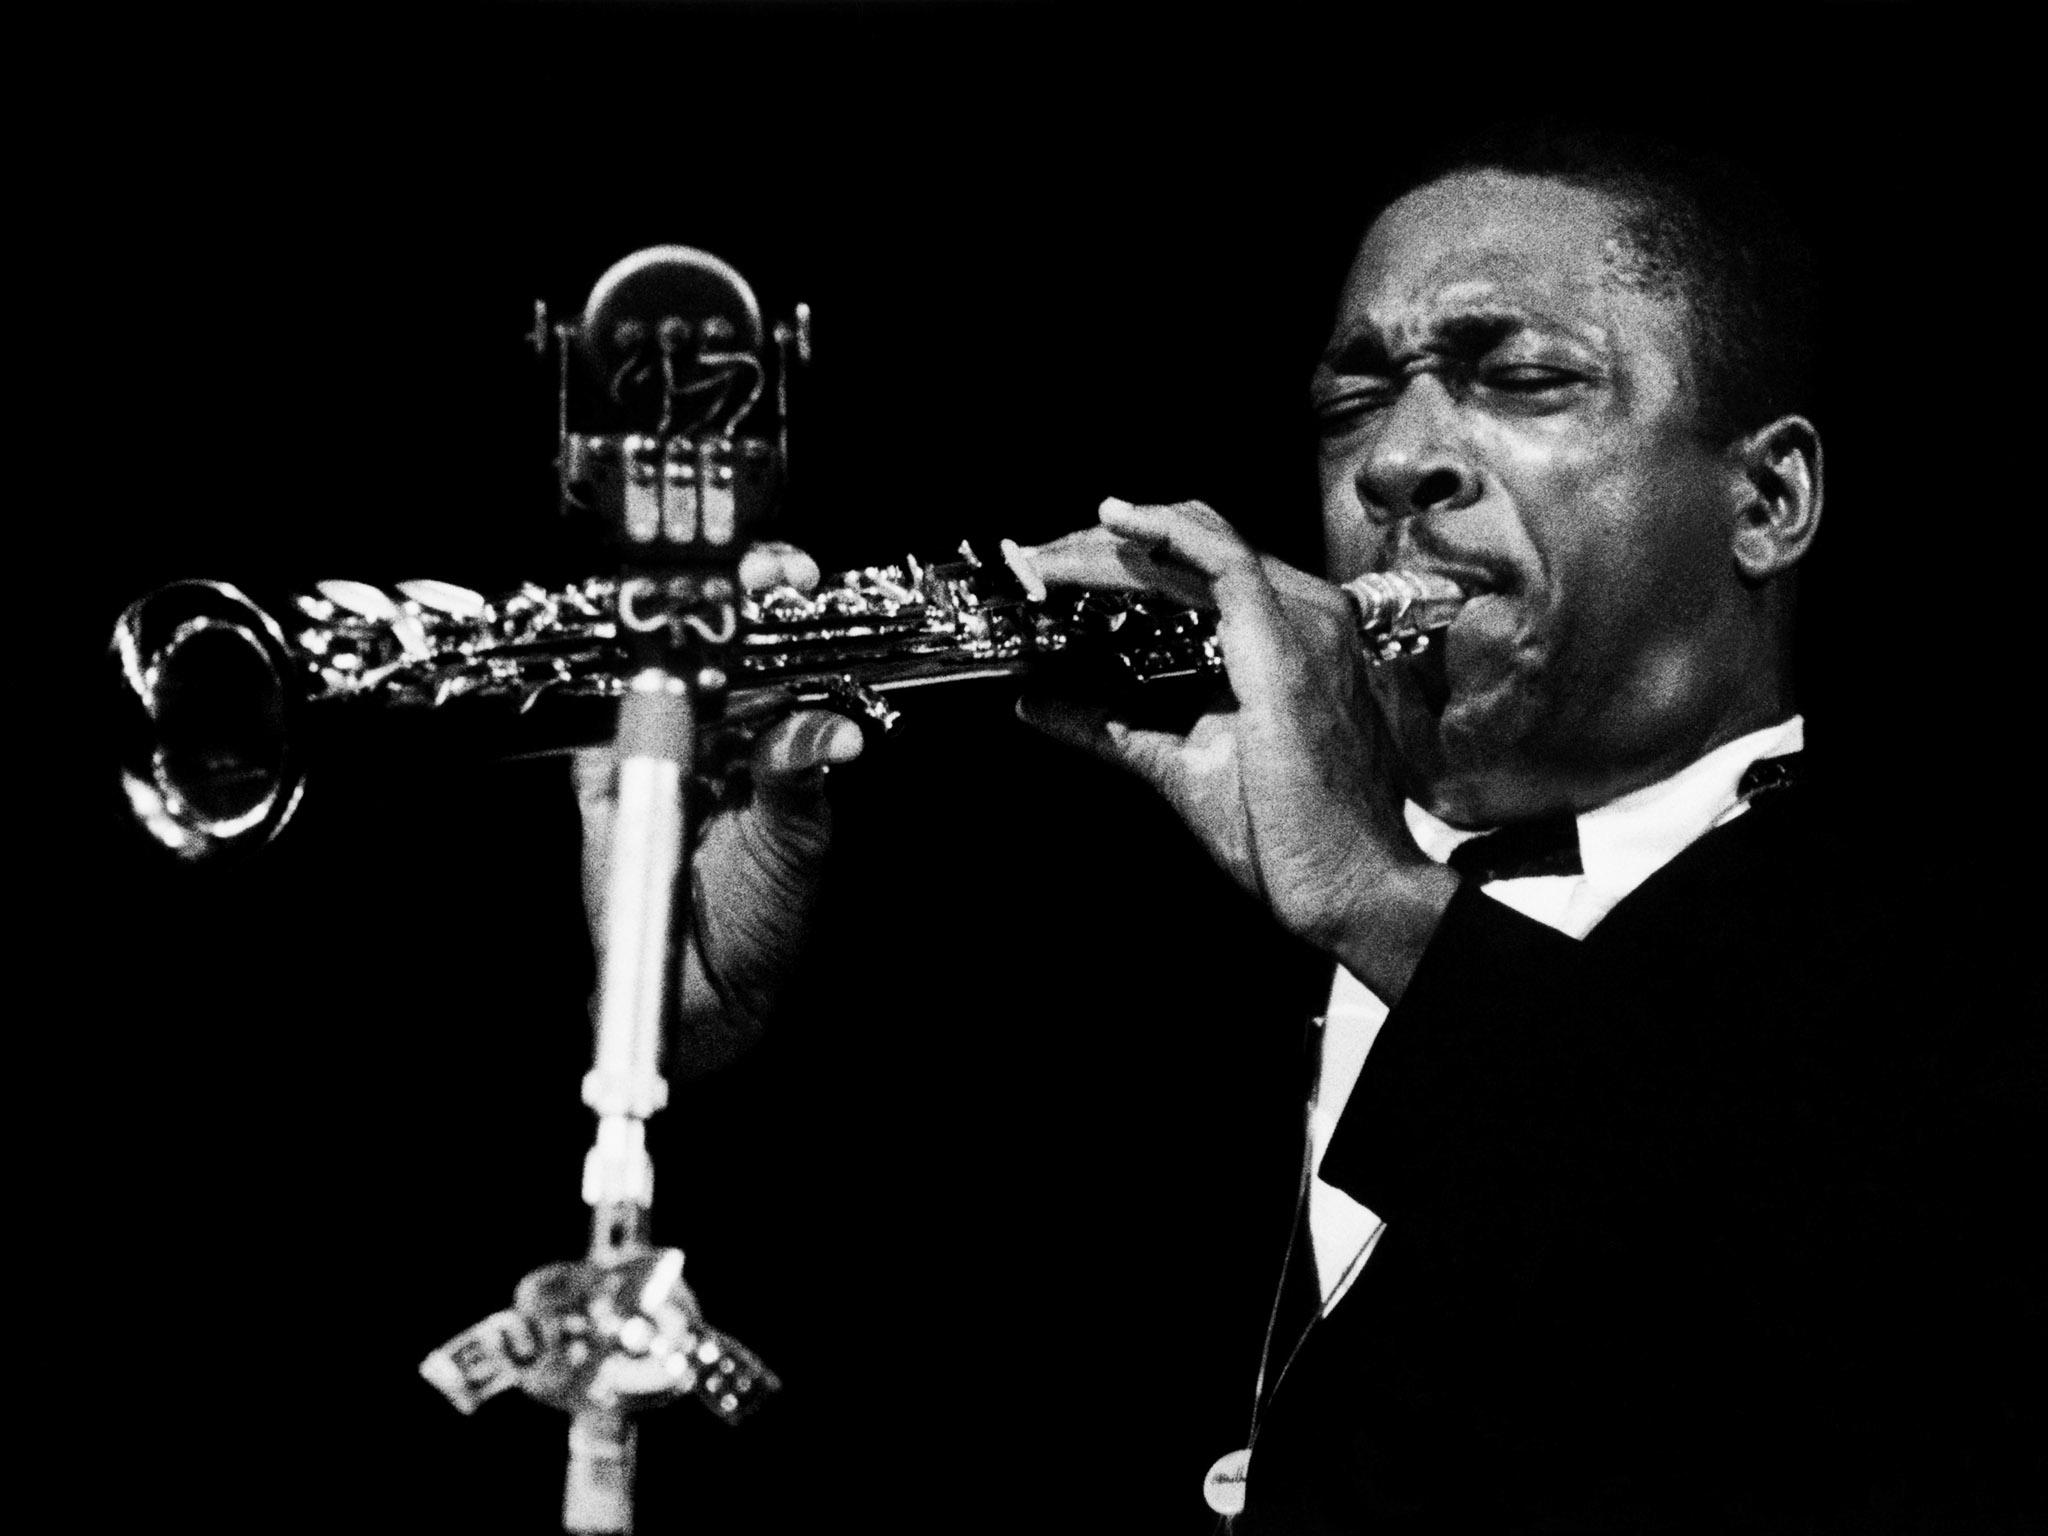 The films that brought the best jazz music to life